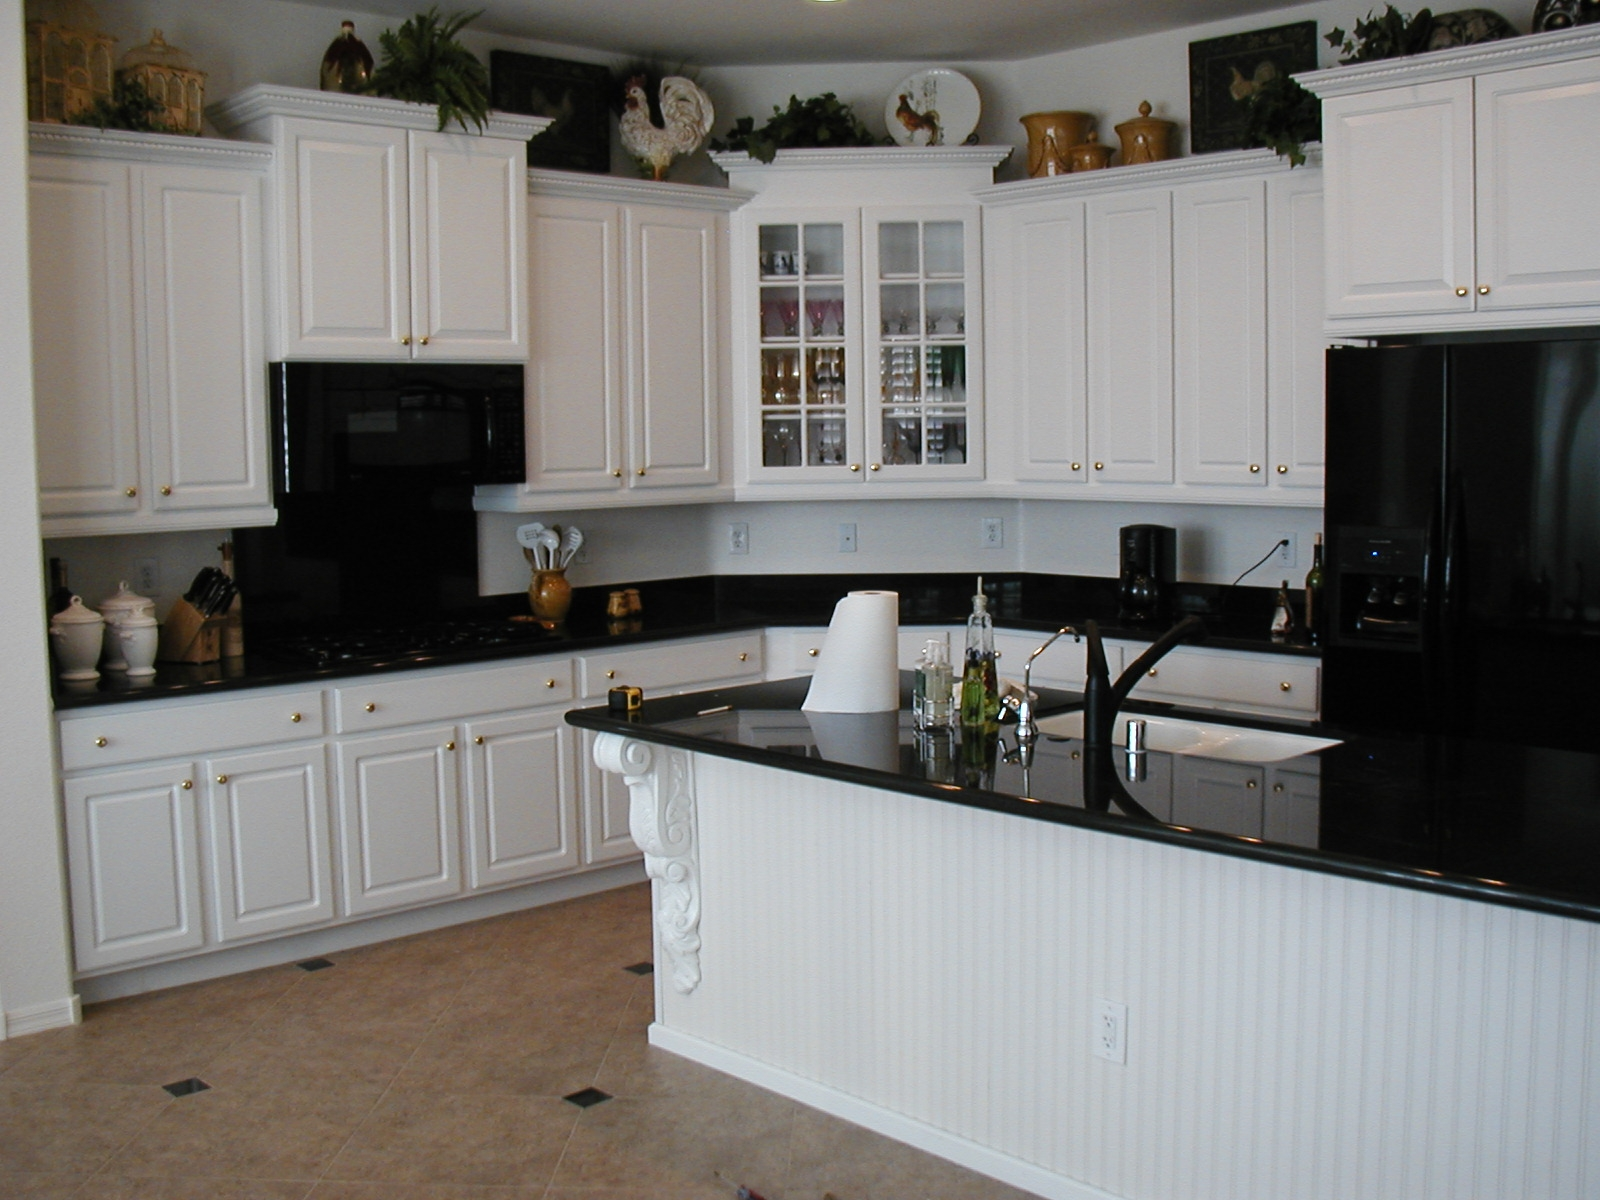 Kitchen Ideas White Cabinets Black Appliances Home Design Jobs